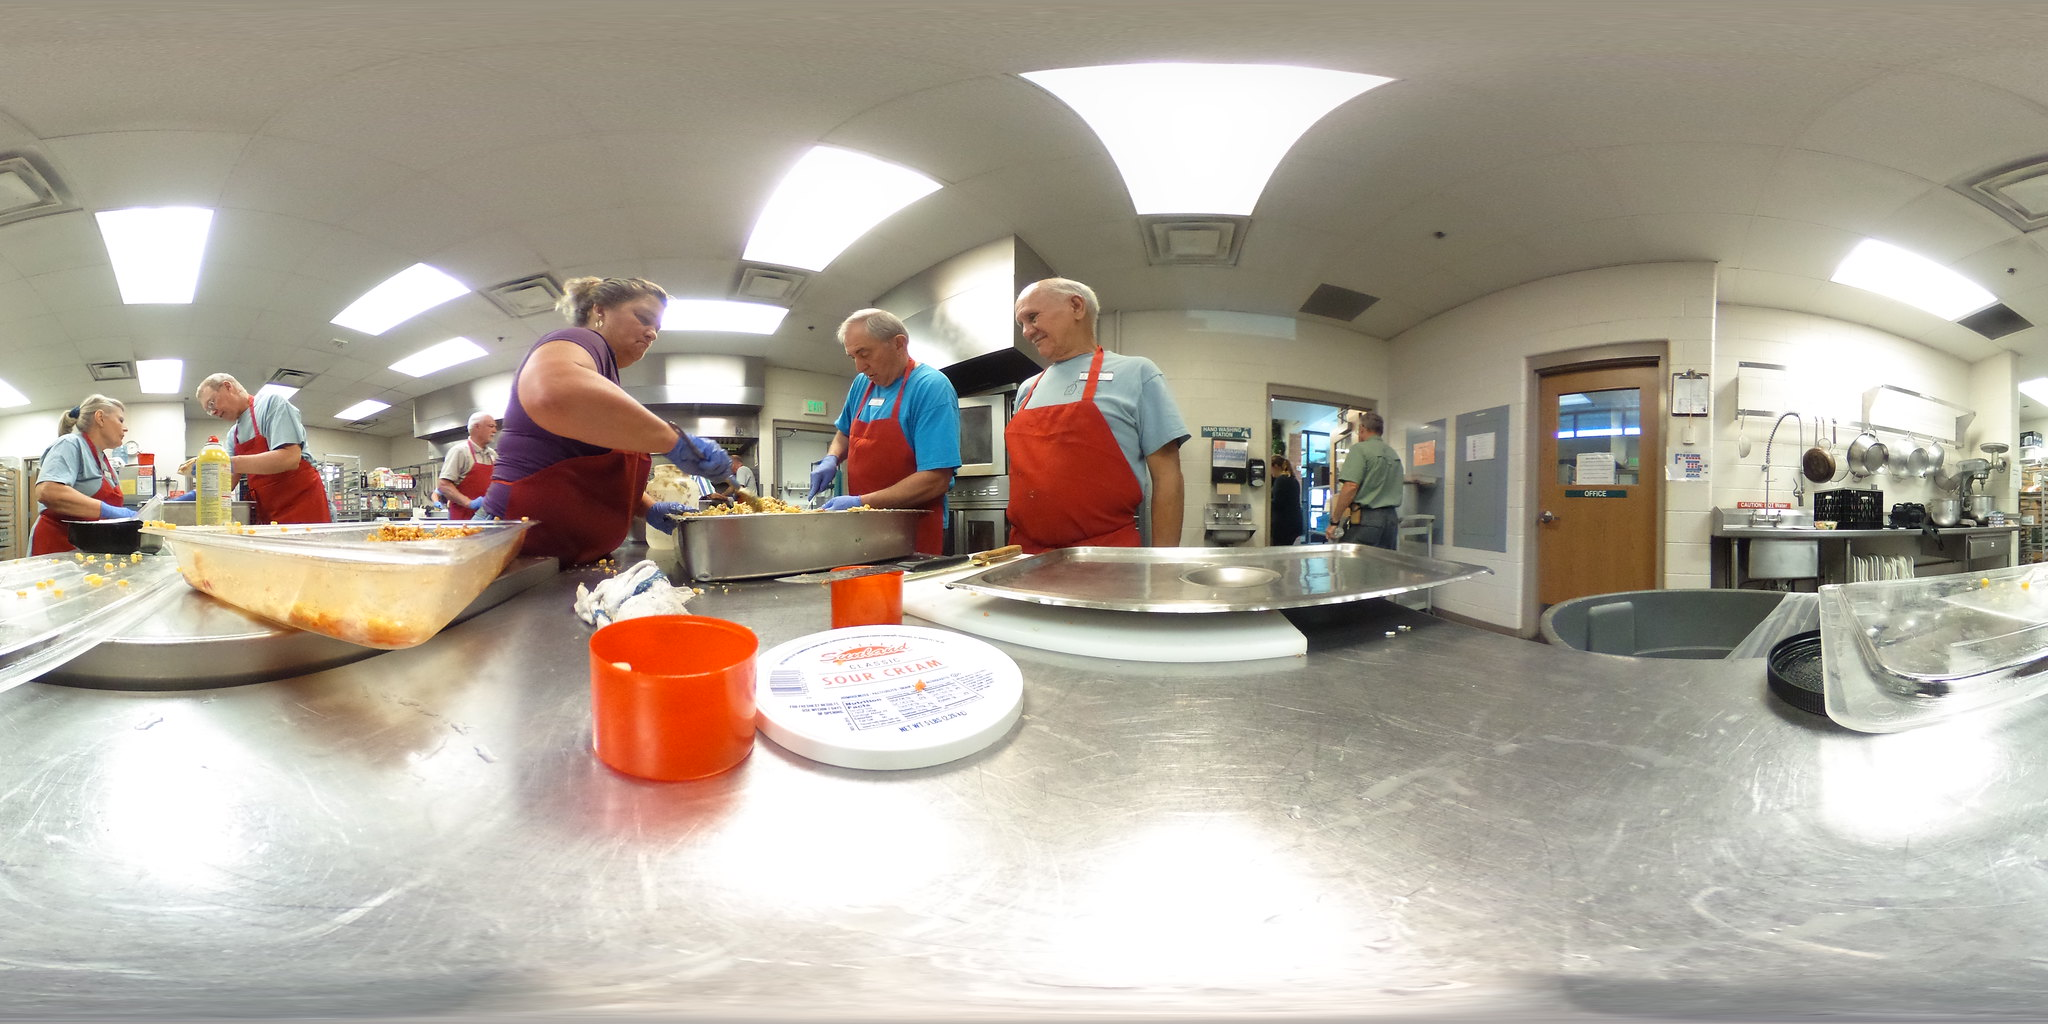 Marian House Soup Kitchen Volunteers Prepping for Lunch